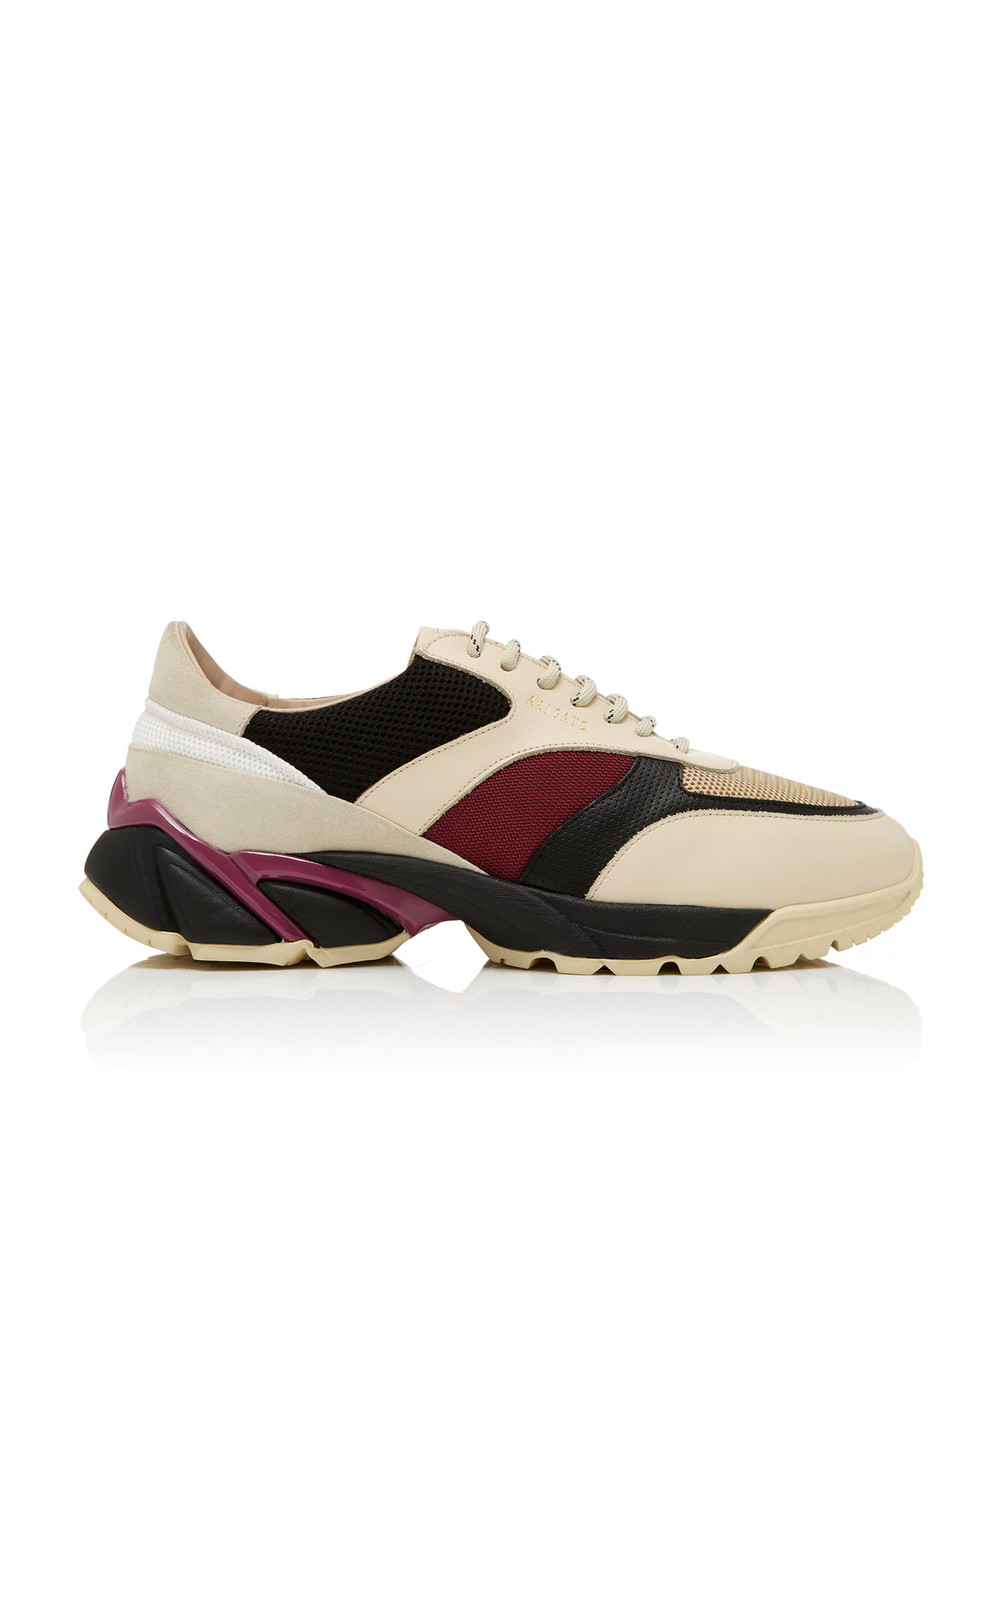 Axel Arigato Tech Runner Leather and Suede Sneakers in multi